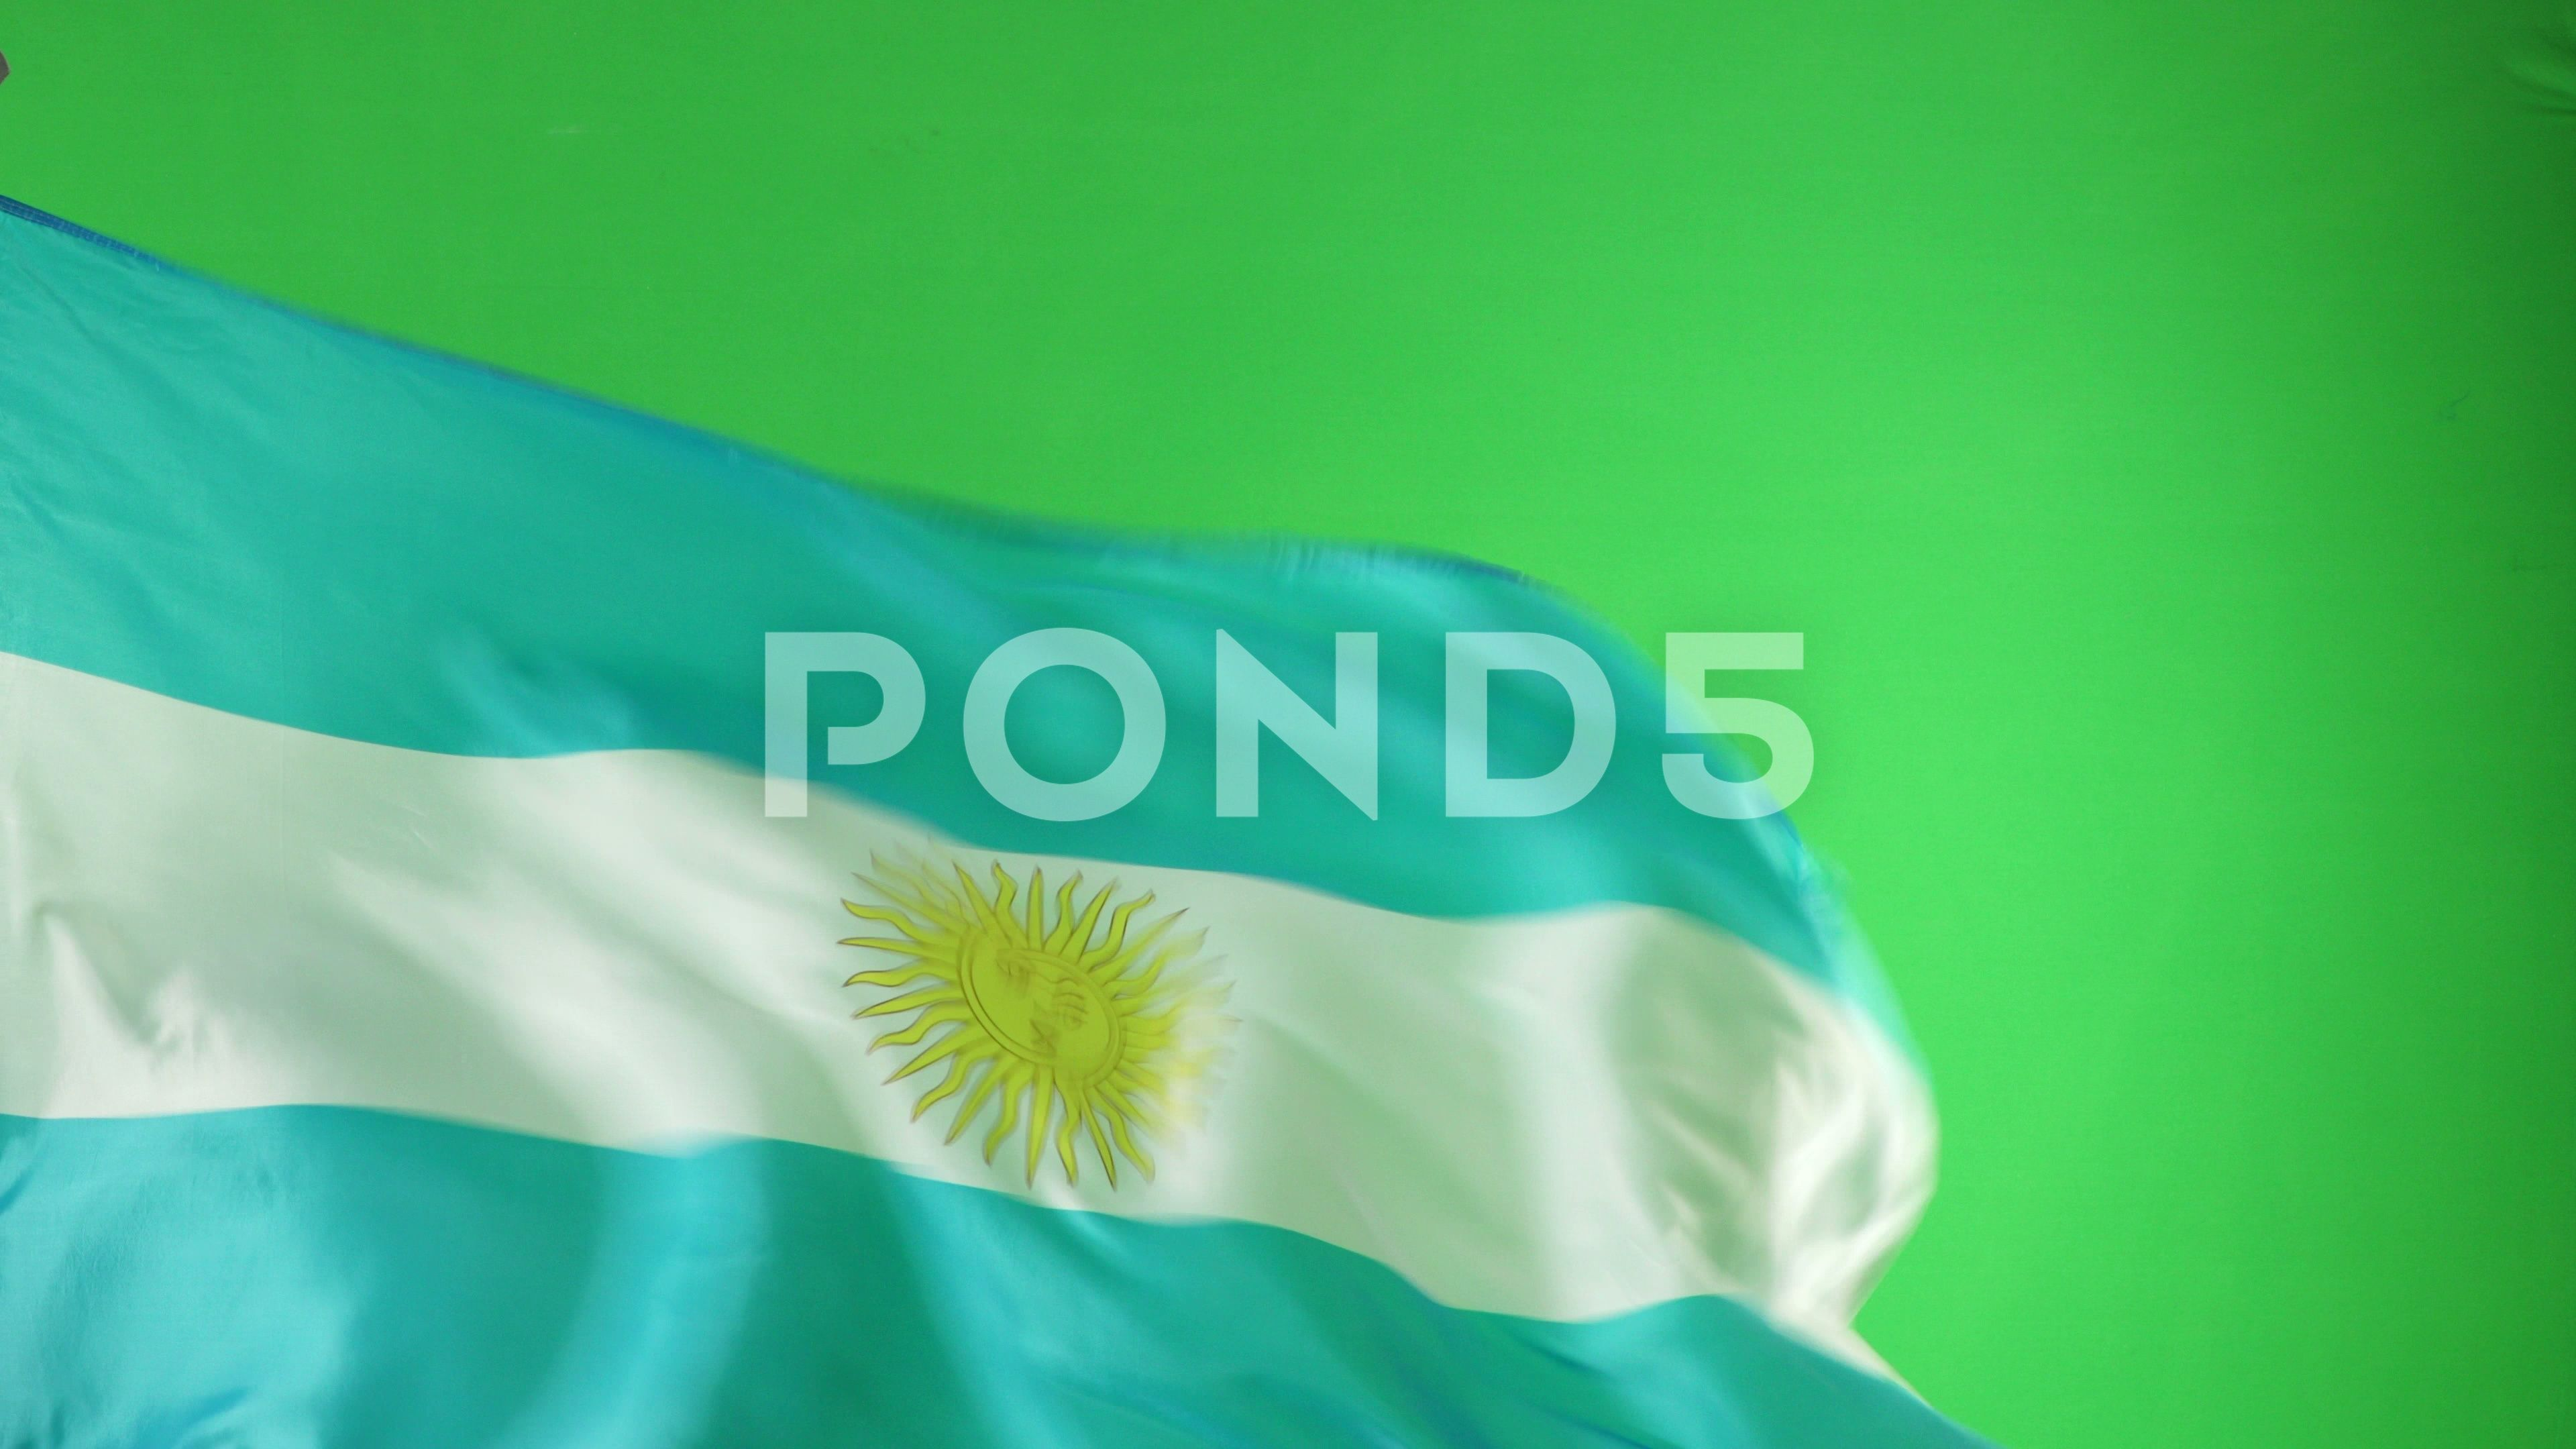 Argentina Flag Flying In Front Of Green Screen Chroma Key Argentinian Ad Front Green Flying Argentina In 2020 Chroma Key Greenscreen Argentina